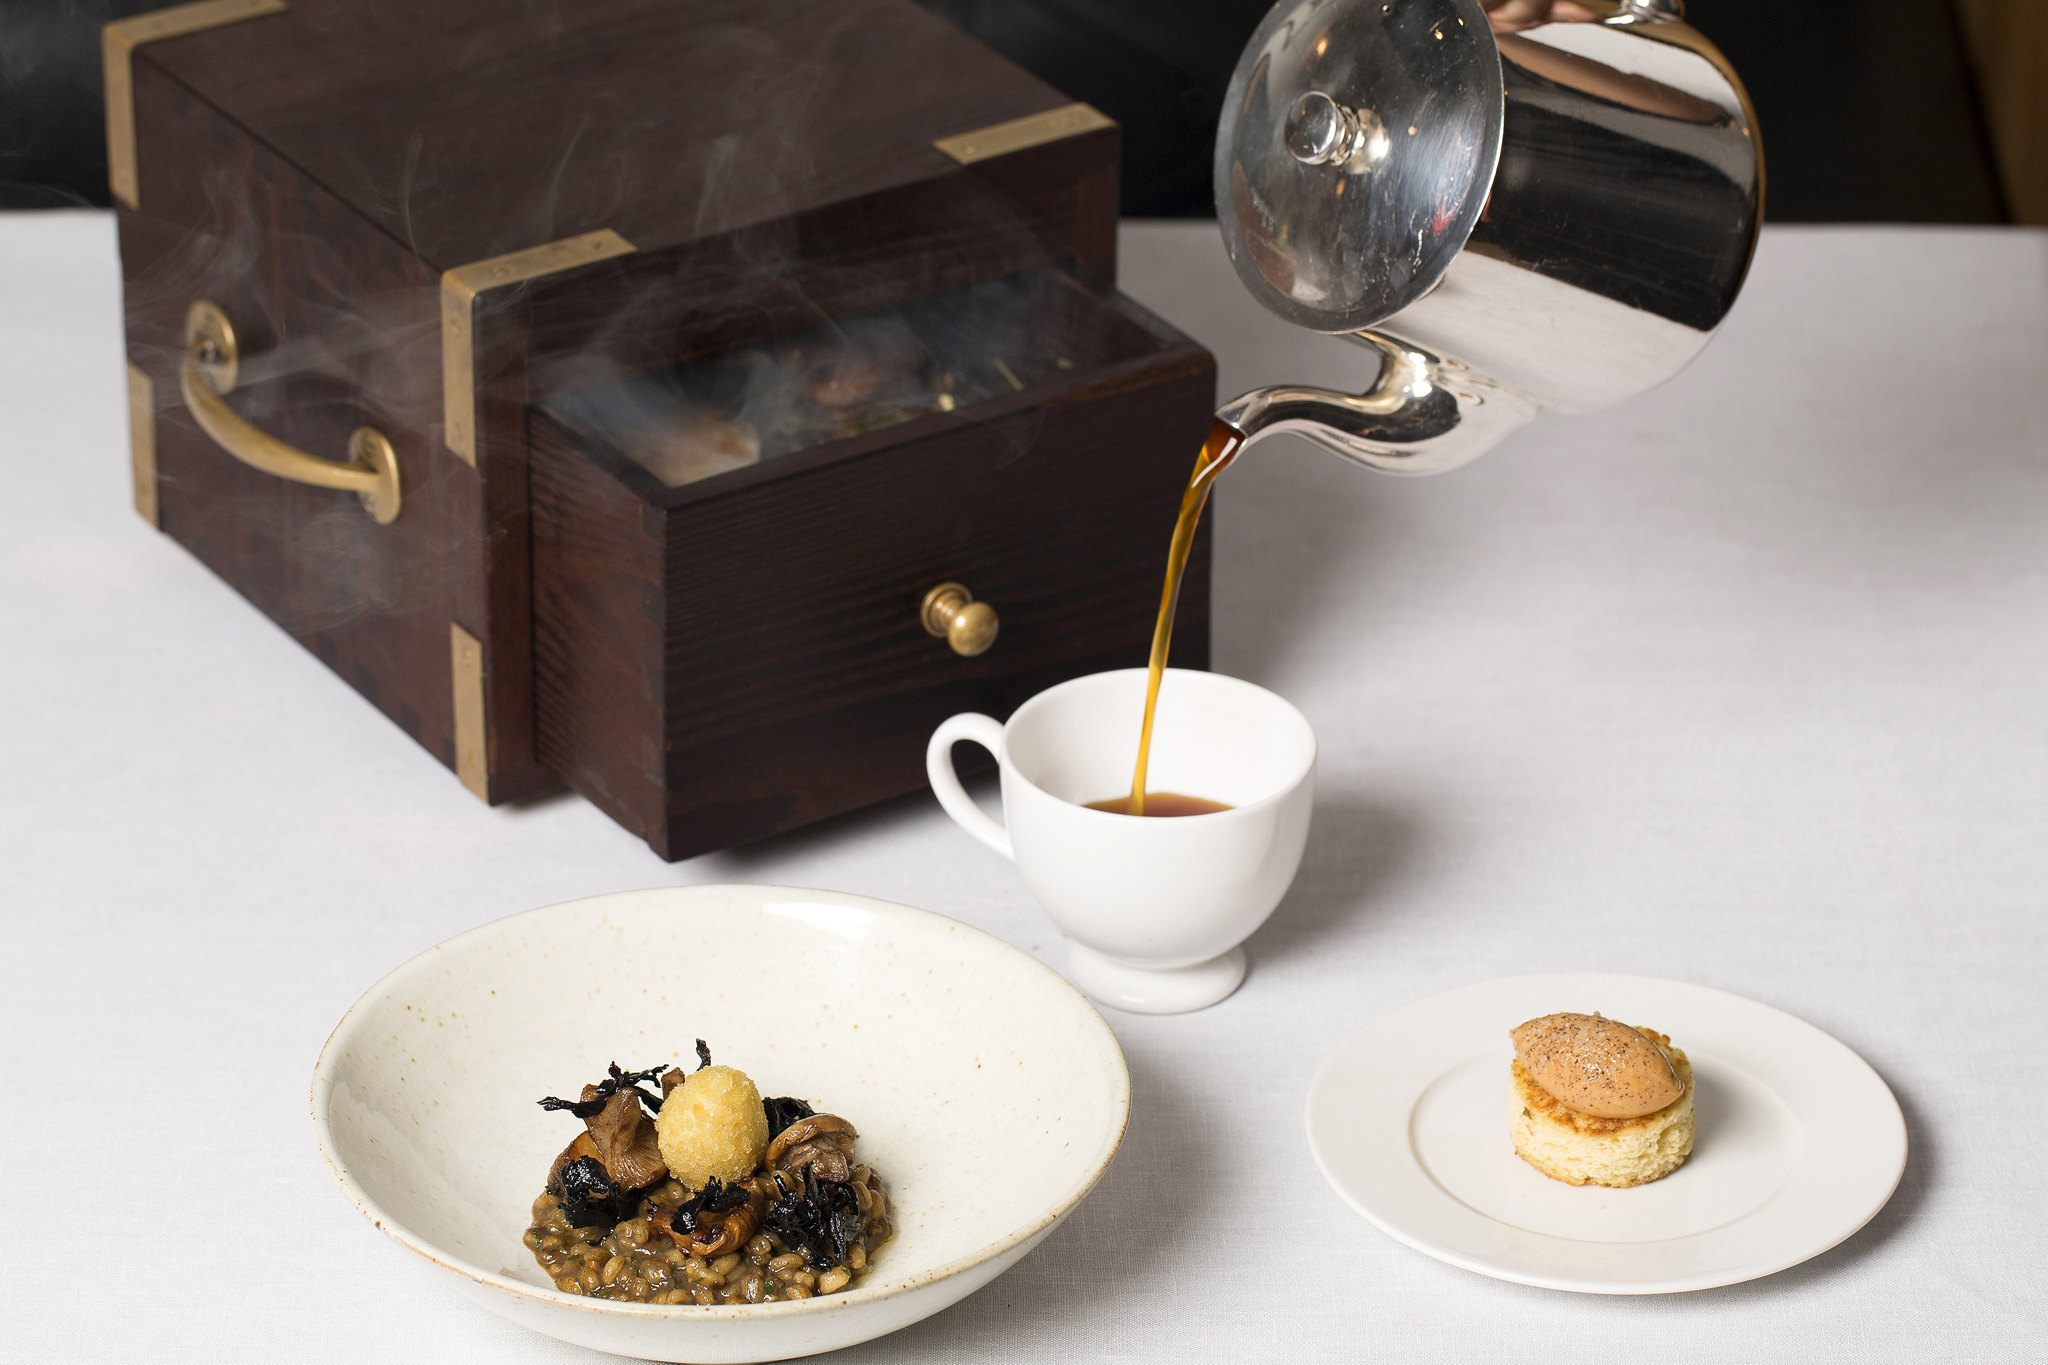 Quail brunch with 'cereal', 'tea' & 'toast' at Pollen Street Social